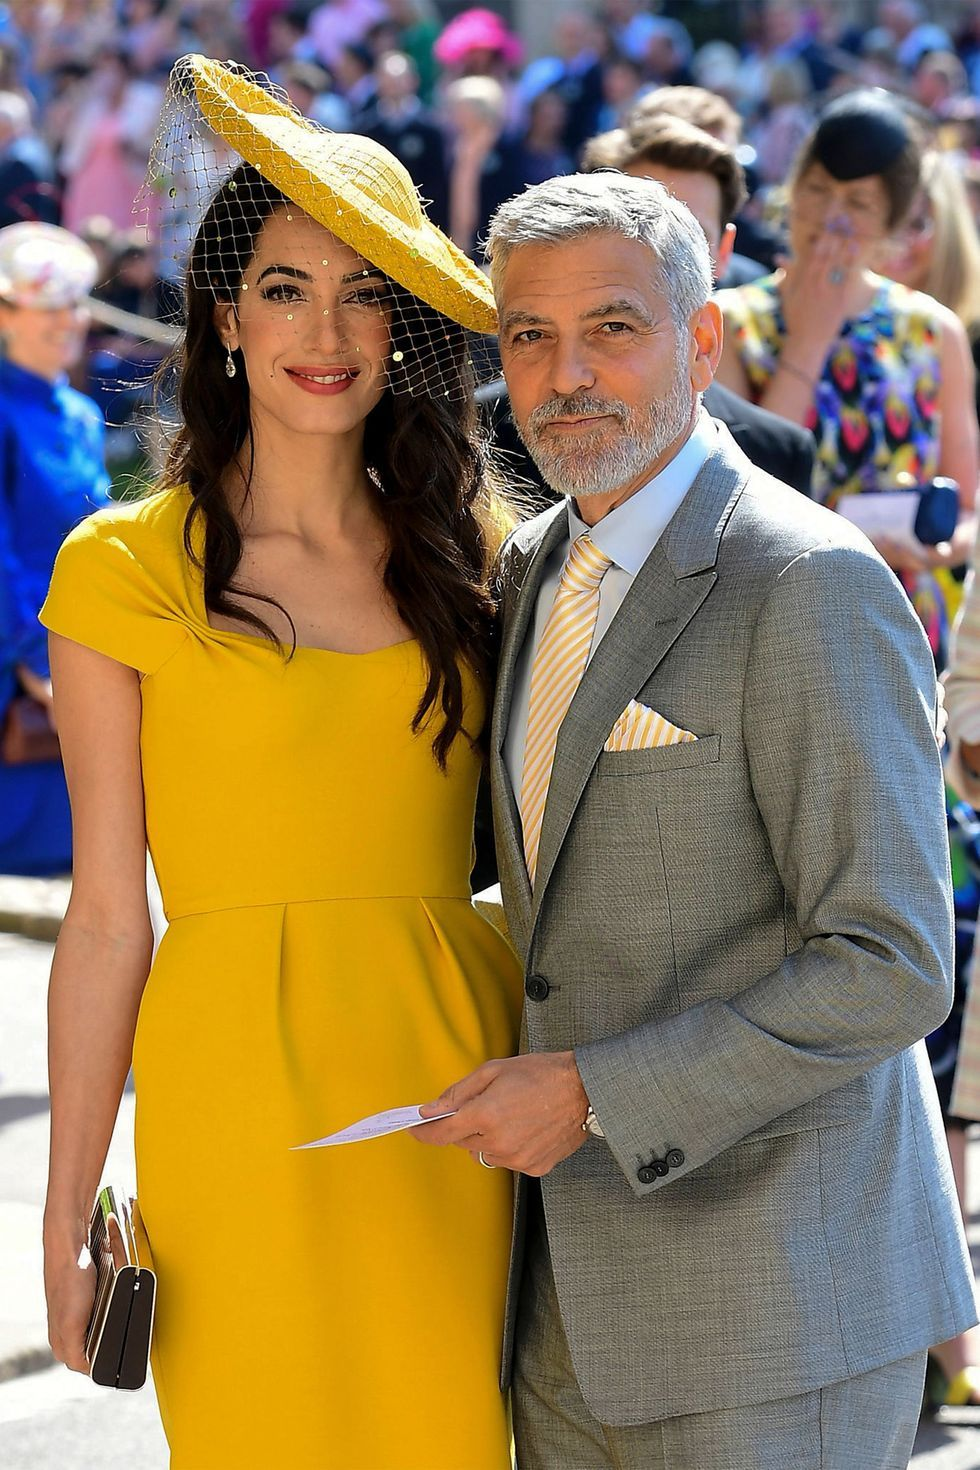 In 2014, the world was shocked when famed bachelor George Clooney, then 52 years old, announced his engagement to international human rights lawyer, then 35-year-old Amal Alamuddin. The couple officially tied the knot in September of 2014 ( just a year after they met ) with a beautiful Venetian wedding , and welcomed two children , twins Ella and Alexander, in June of 2017.